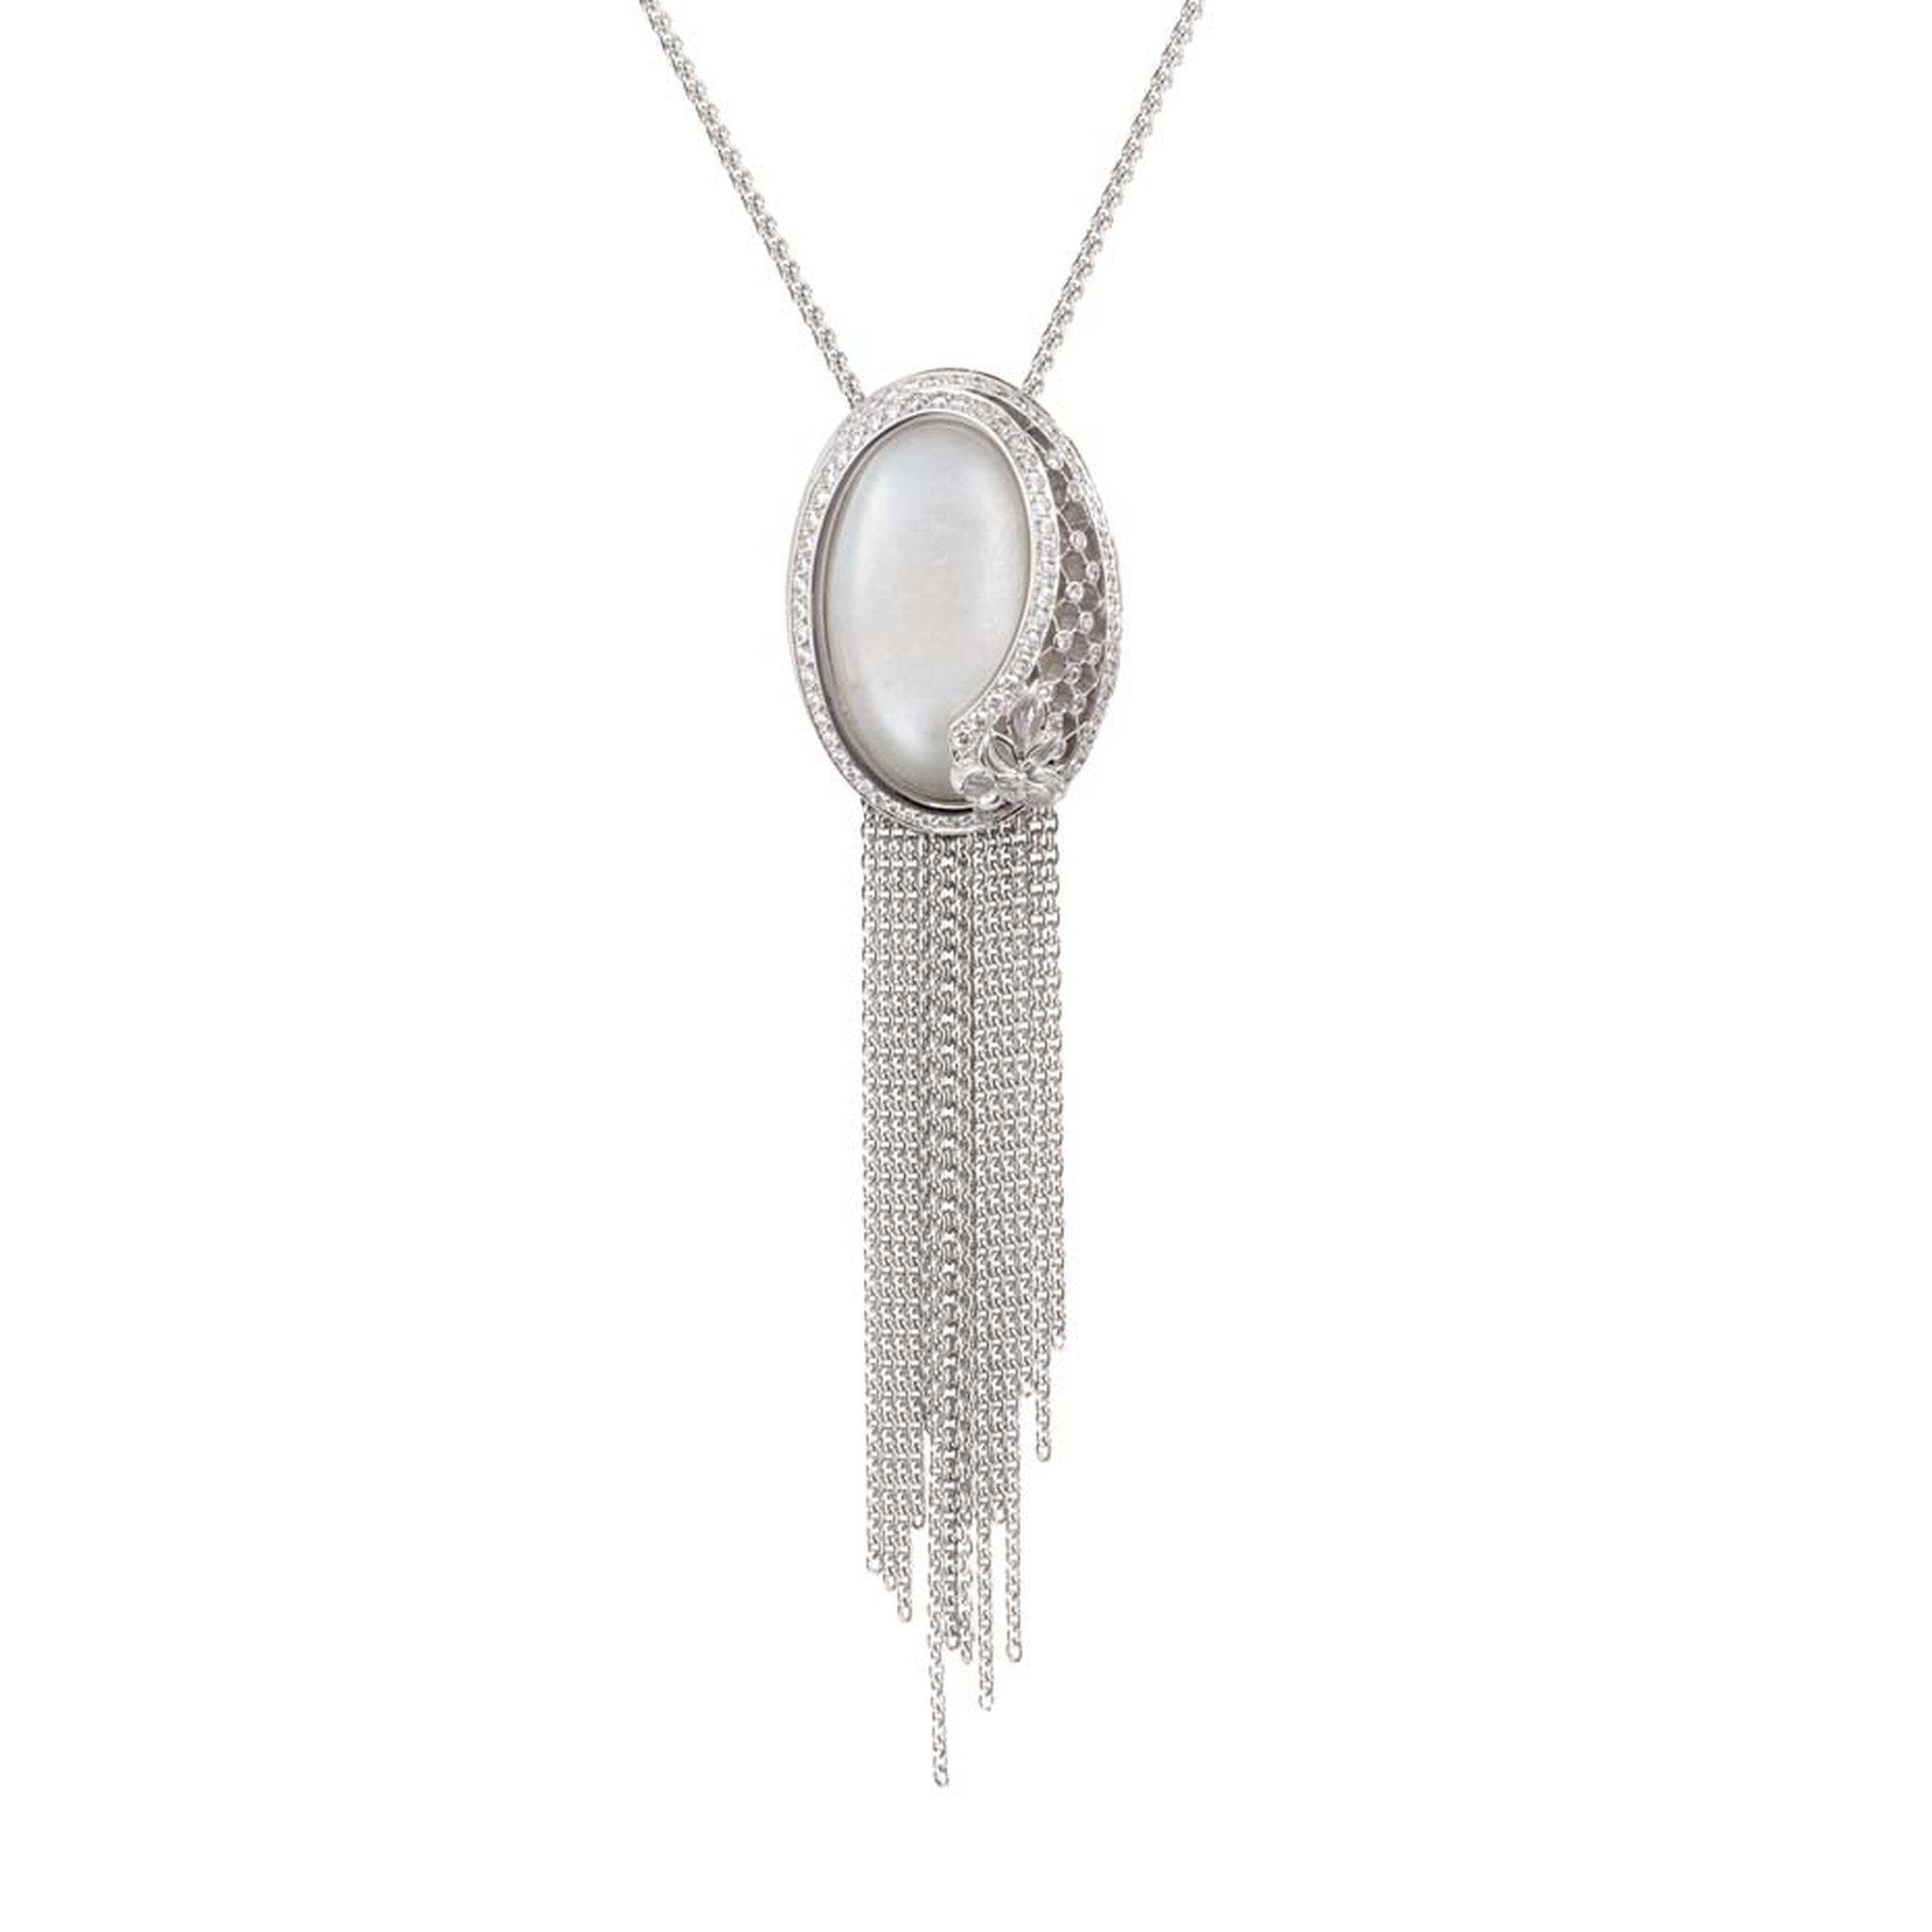 Carrera y Carrera Sierpes necklace in white gold, moonstone and diamonds.